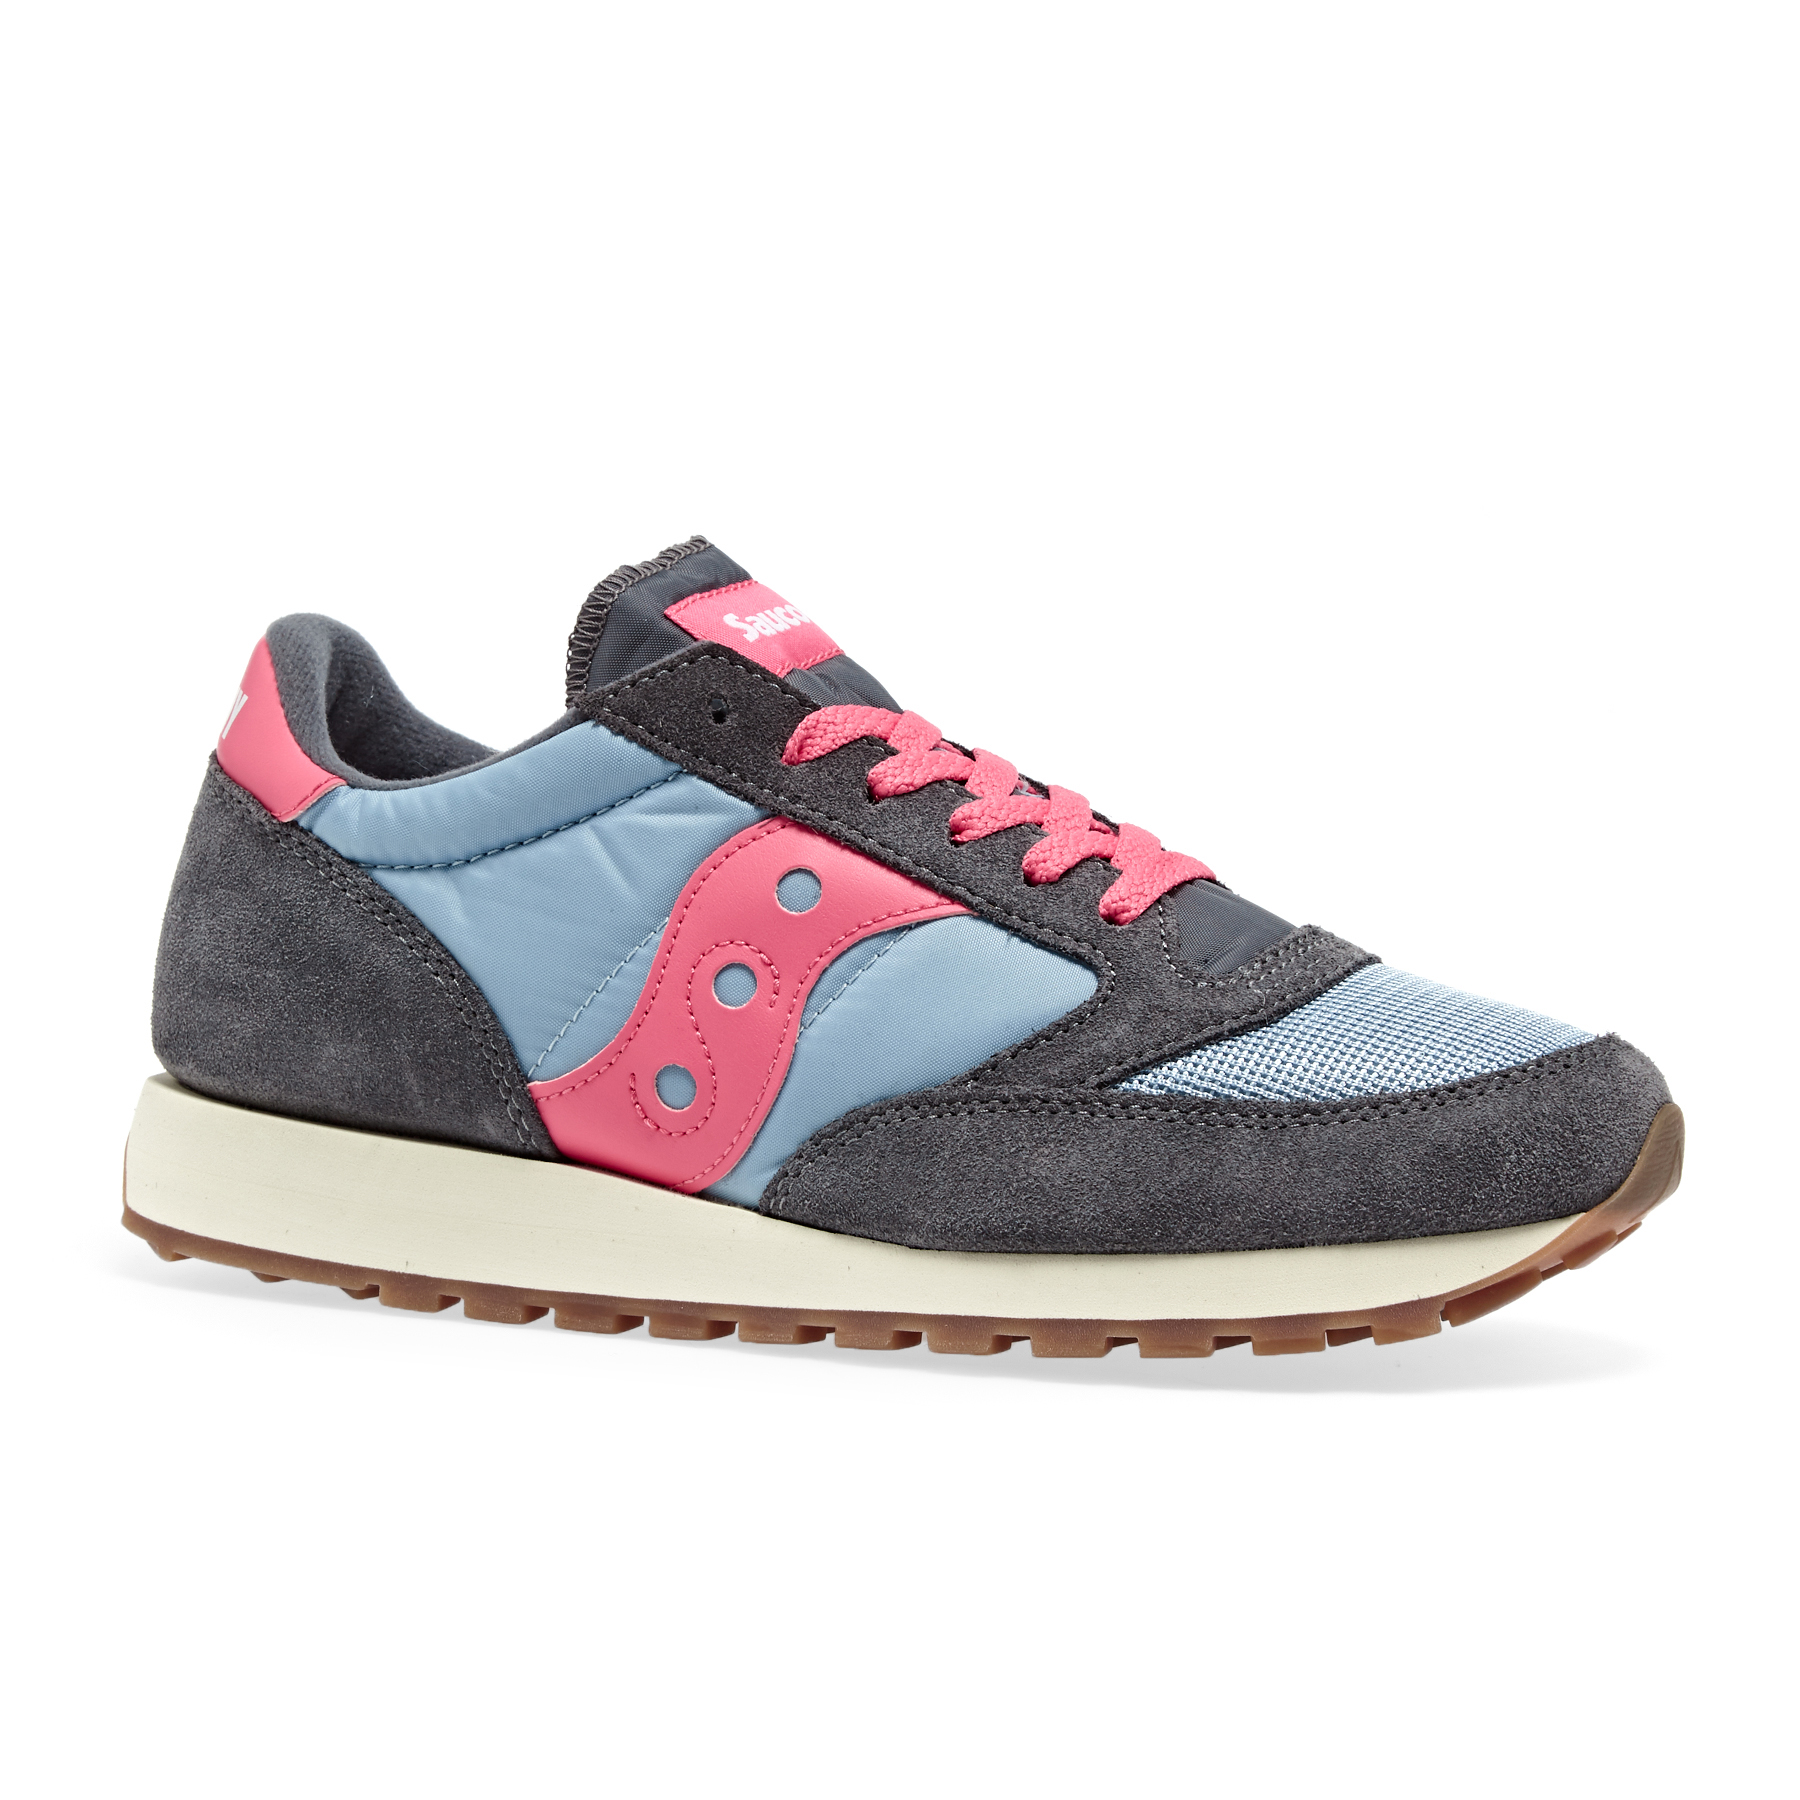 Saucony Shadow 5000 Vintage W shoes pink grey red